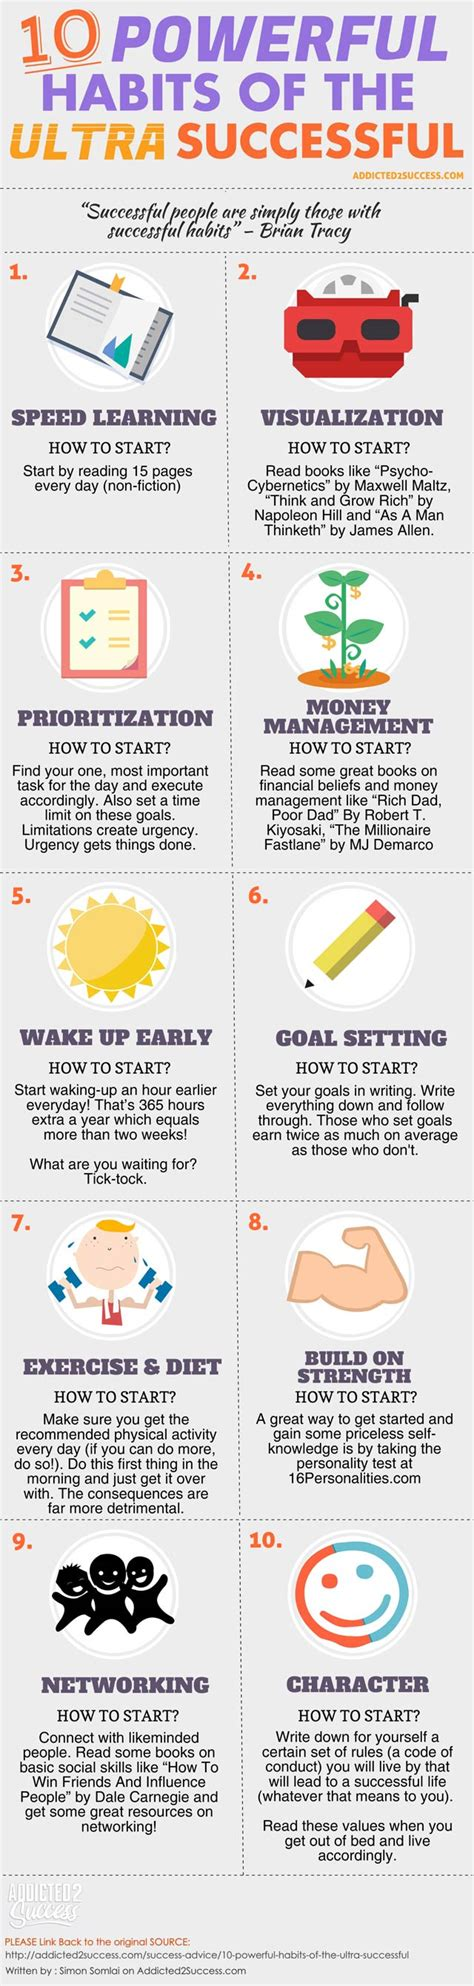 10 powerful habits of the successful infographic